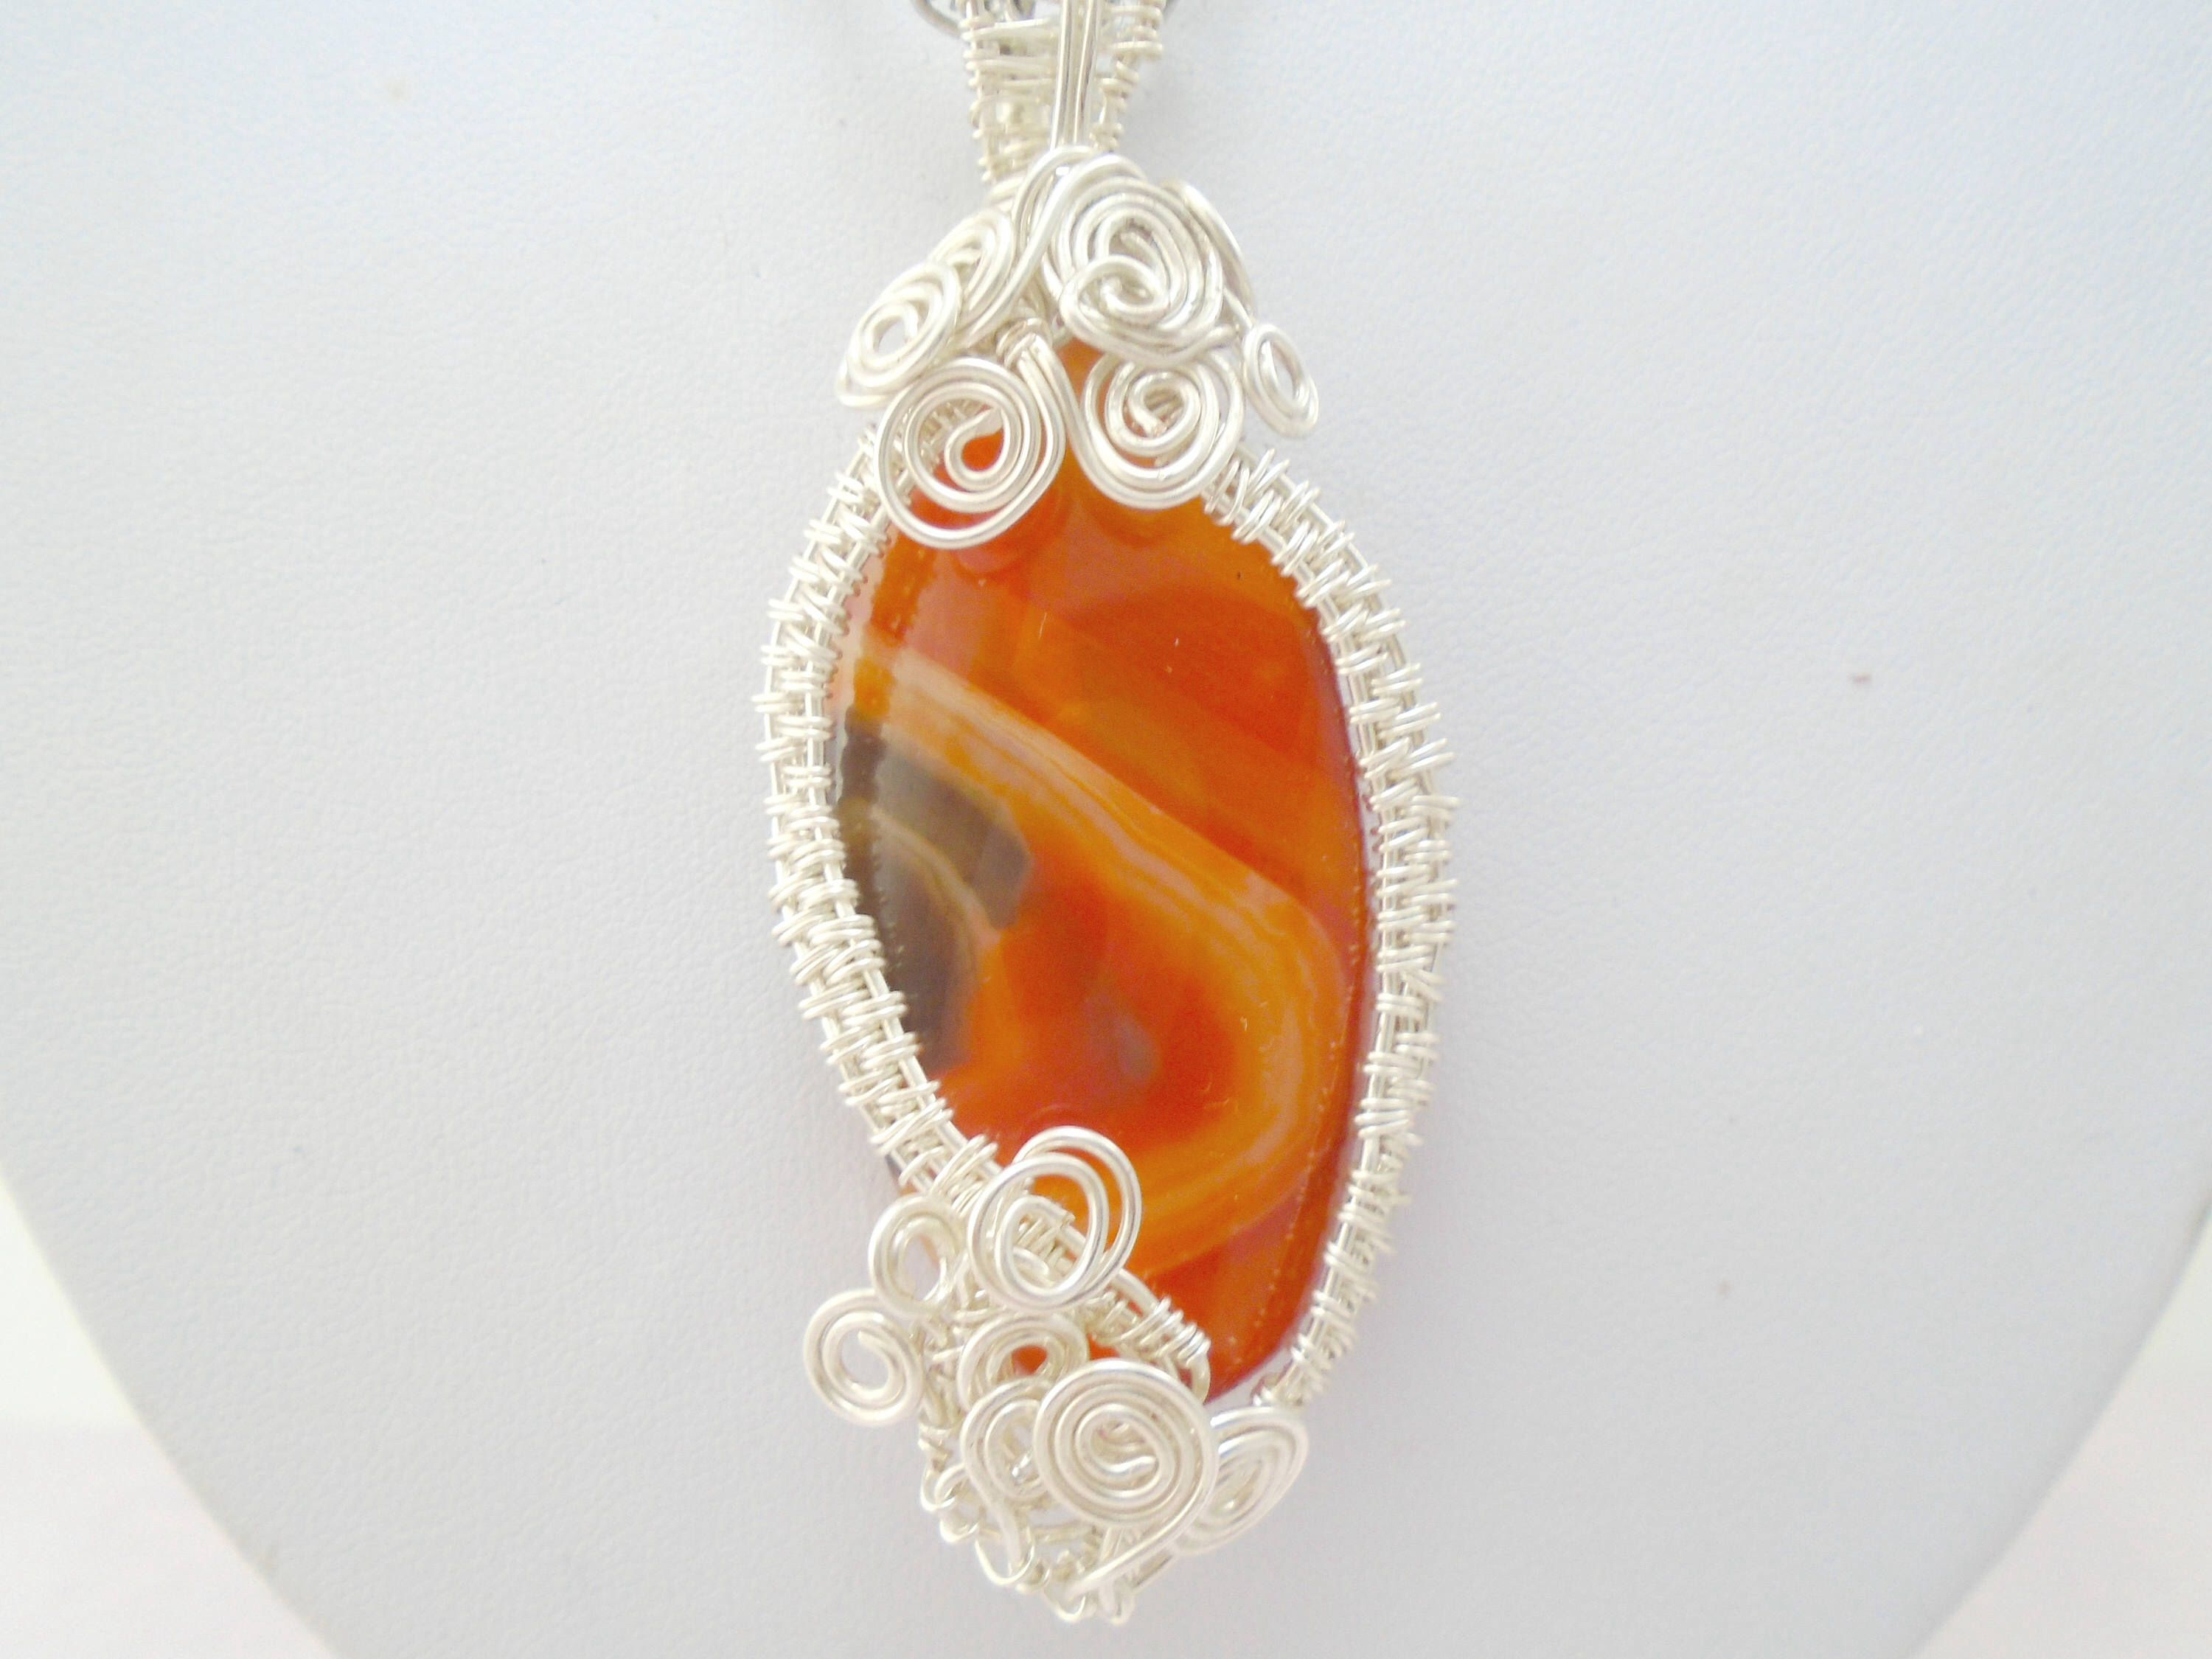 Carnelian necklace carnelian pendant carnelian jewelry gemstone carnelian necklace carnelian pendant carnelian jewelry gemstone necklace gemstone pendant wire mozeypictures Gallery